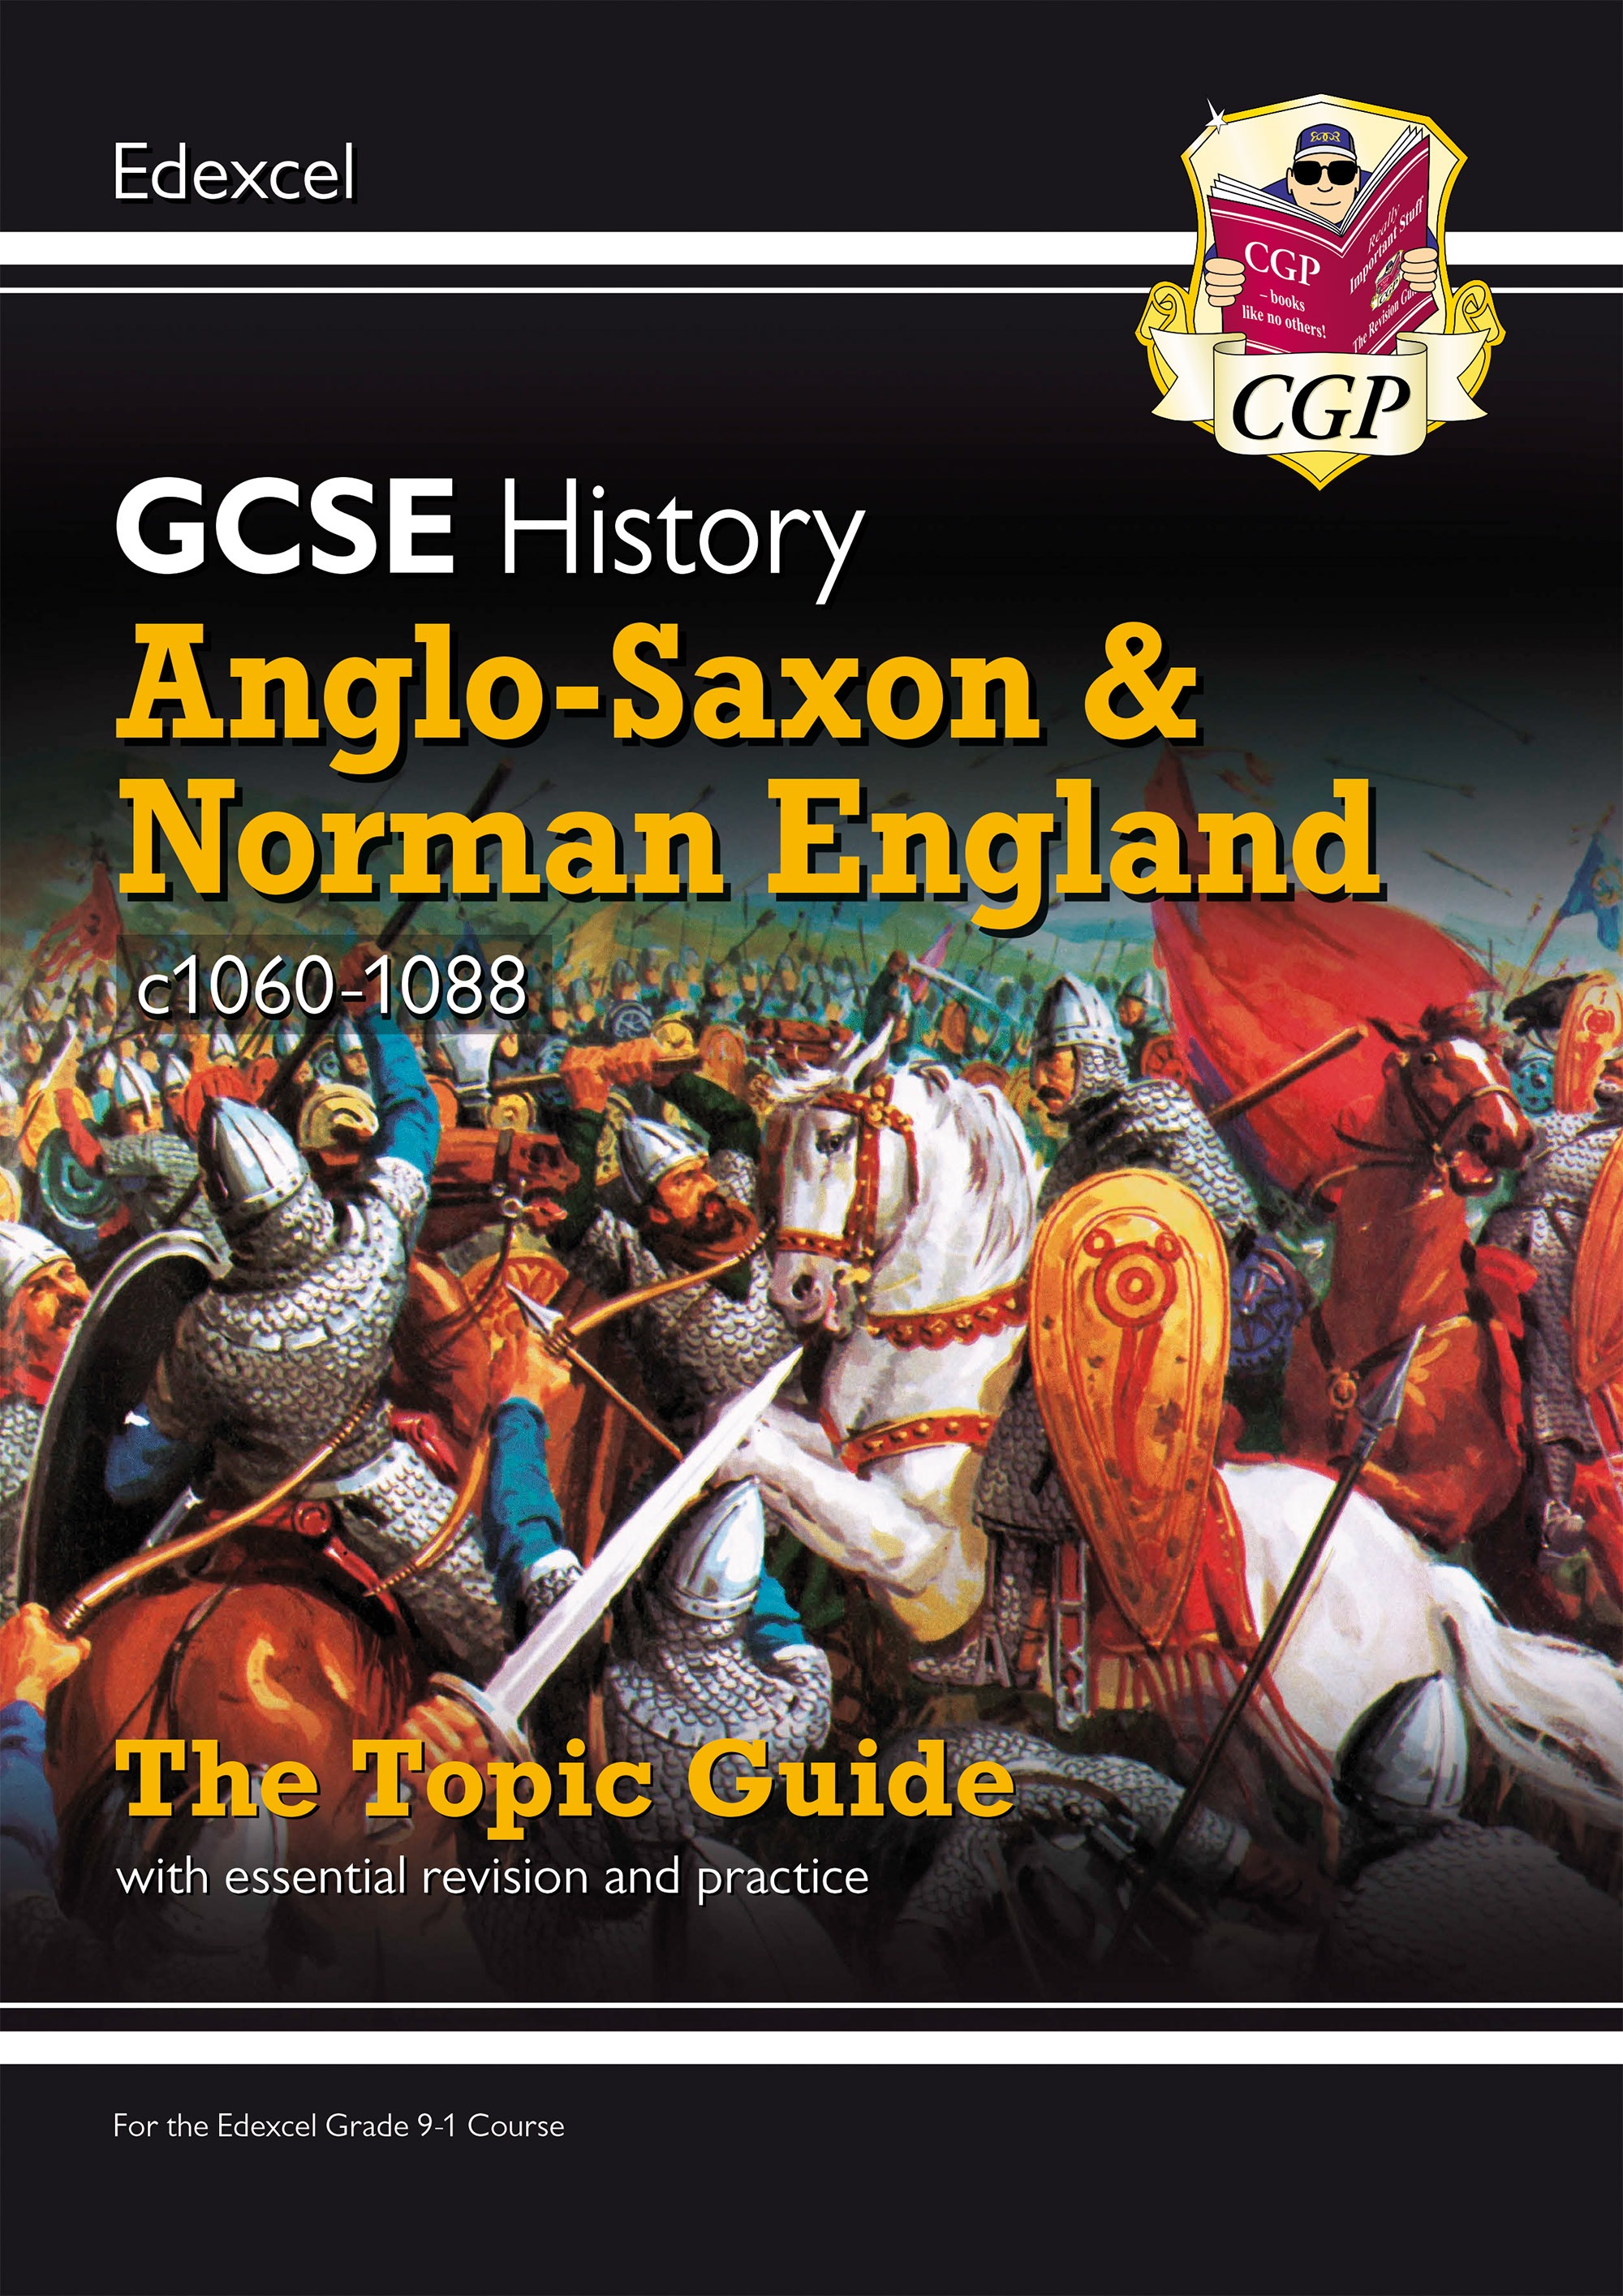 HEANO41DK - New Grade 9-1 GCSE History Edexcel Topic Guide - Anglo-Saxon and Norman England, c1060-8